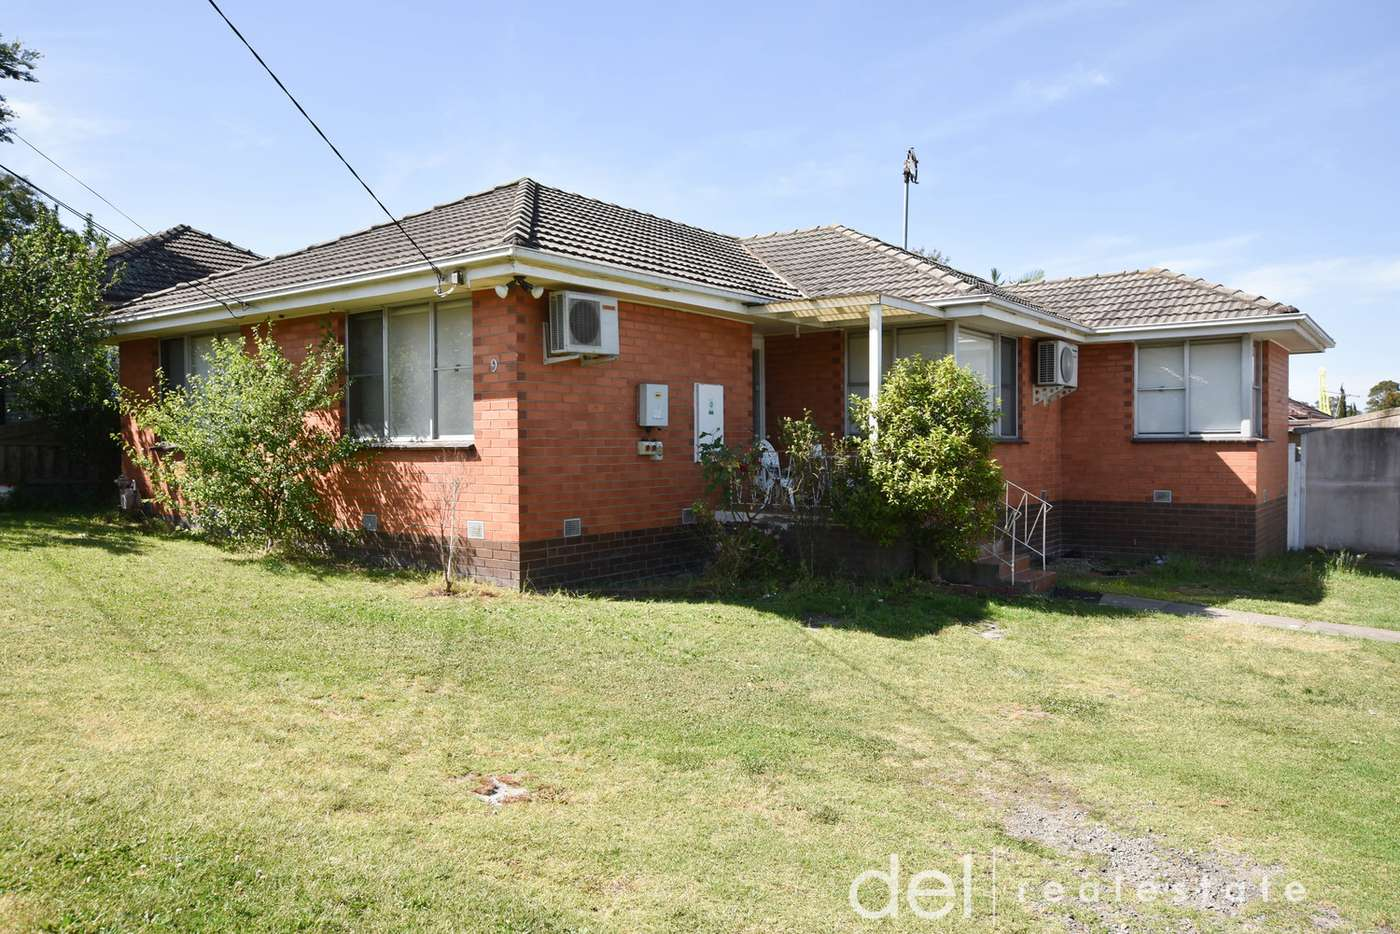 Main view of Homely house listing, 9 Lee Street, Noble Park VIC 3174